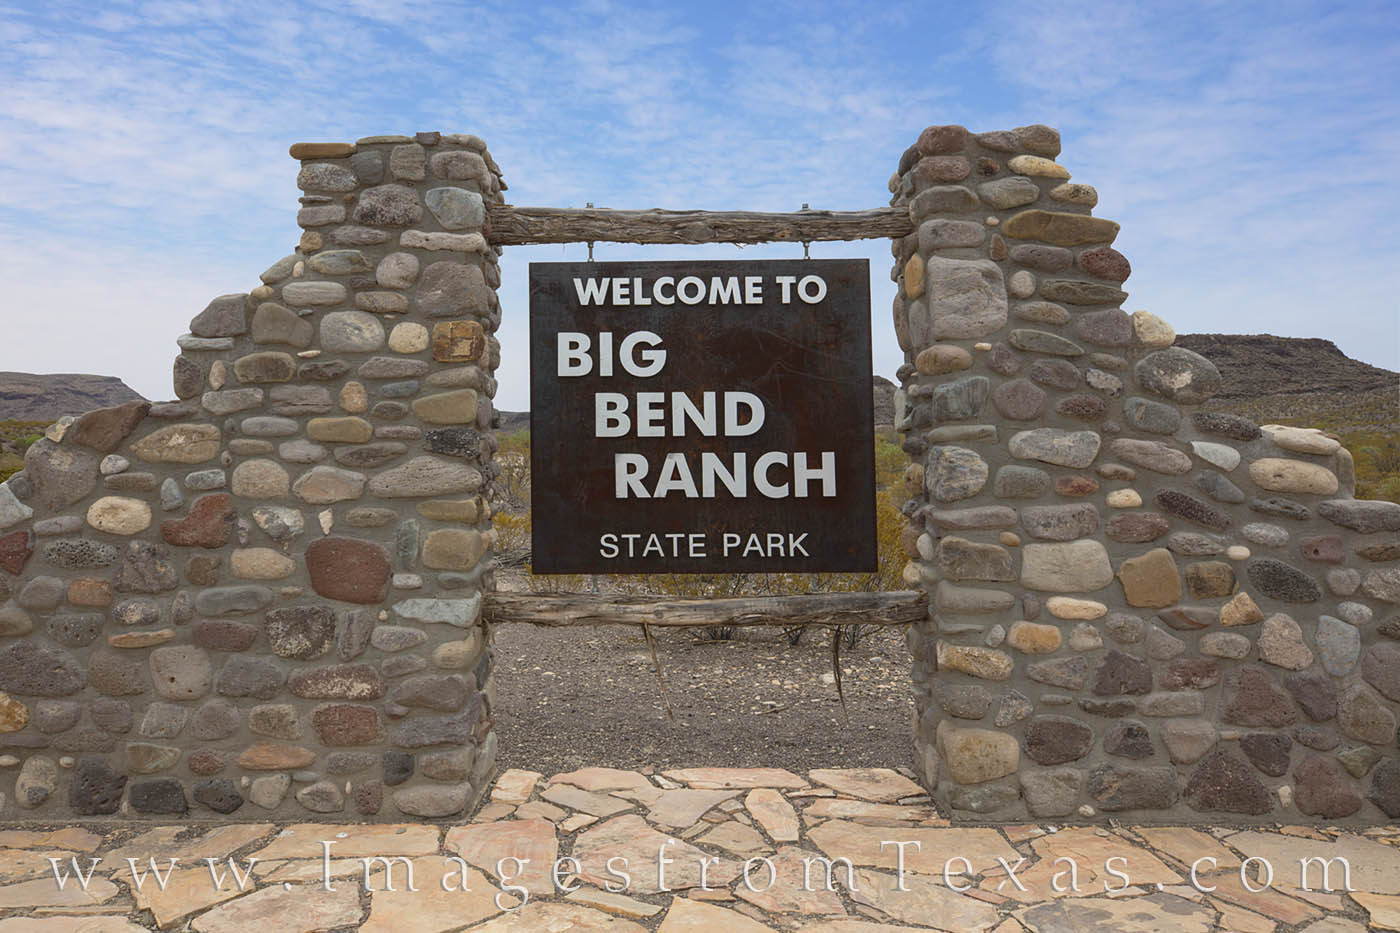 big bend ranch state park, welcome sign, visitors, park entrance, big bend ranch entrance, photo